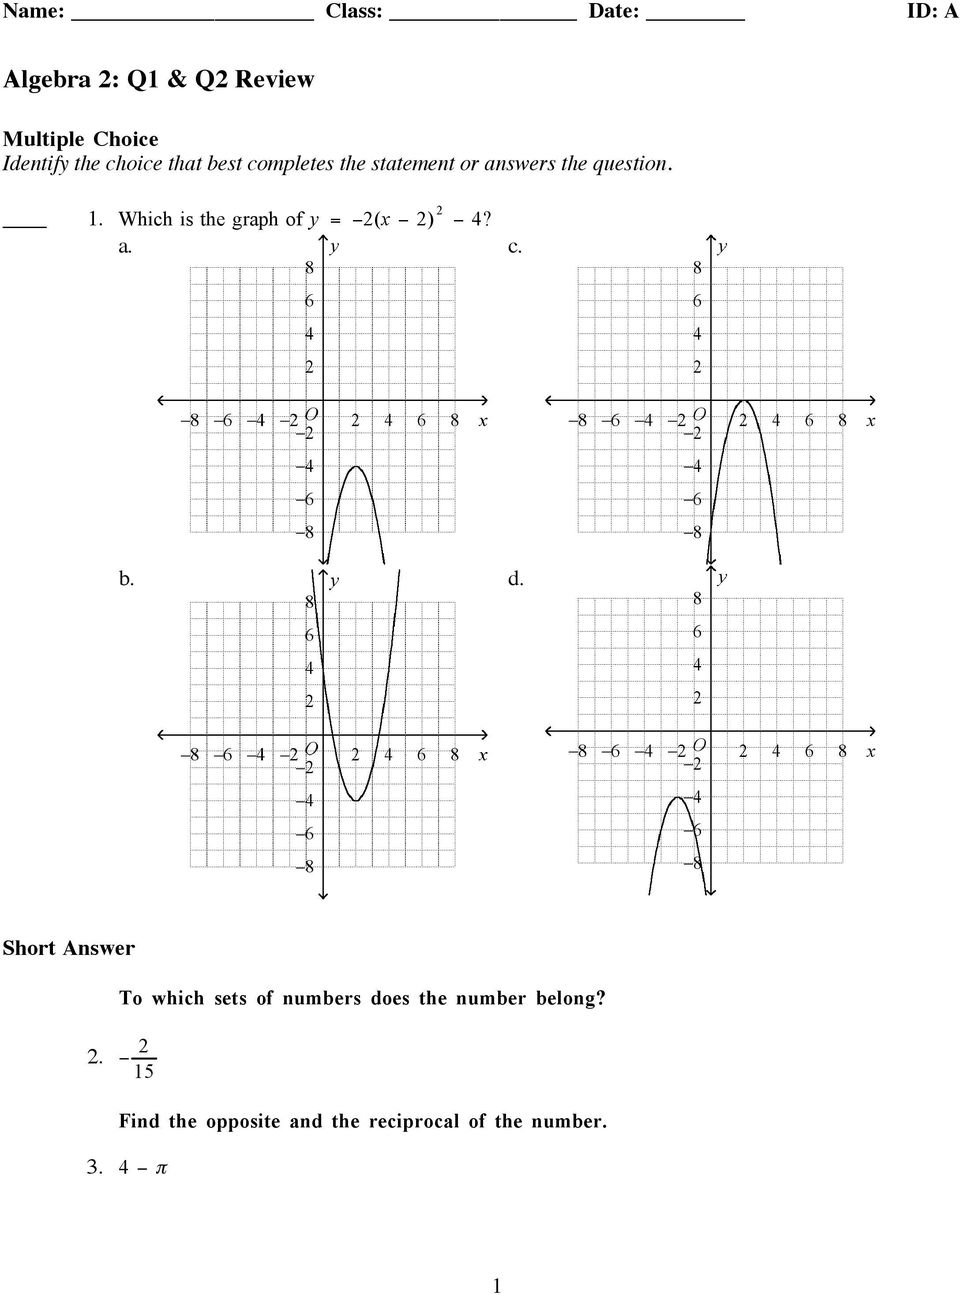 Algebra 2: Q1 & Q2 Review - PDF